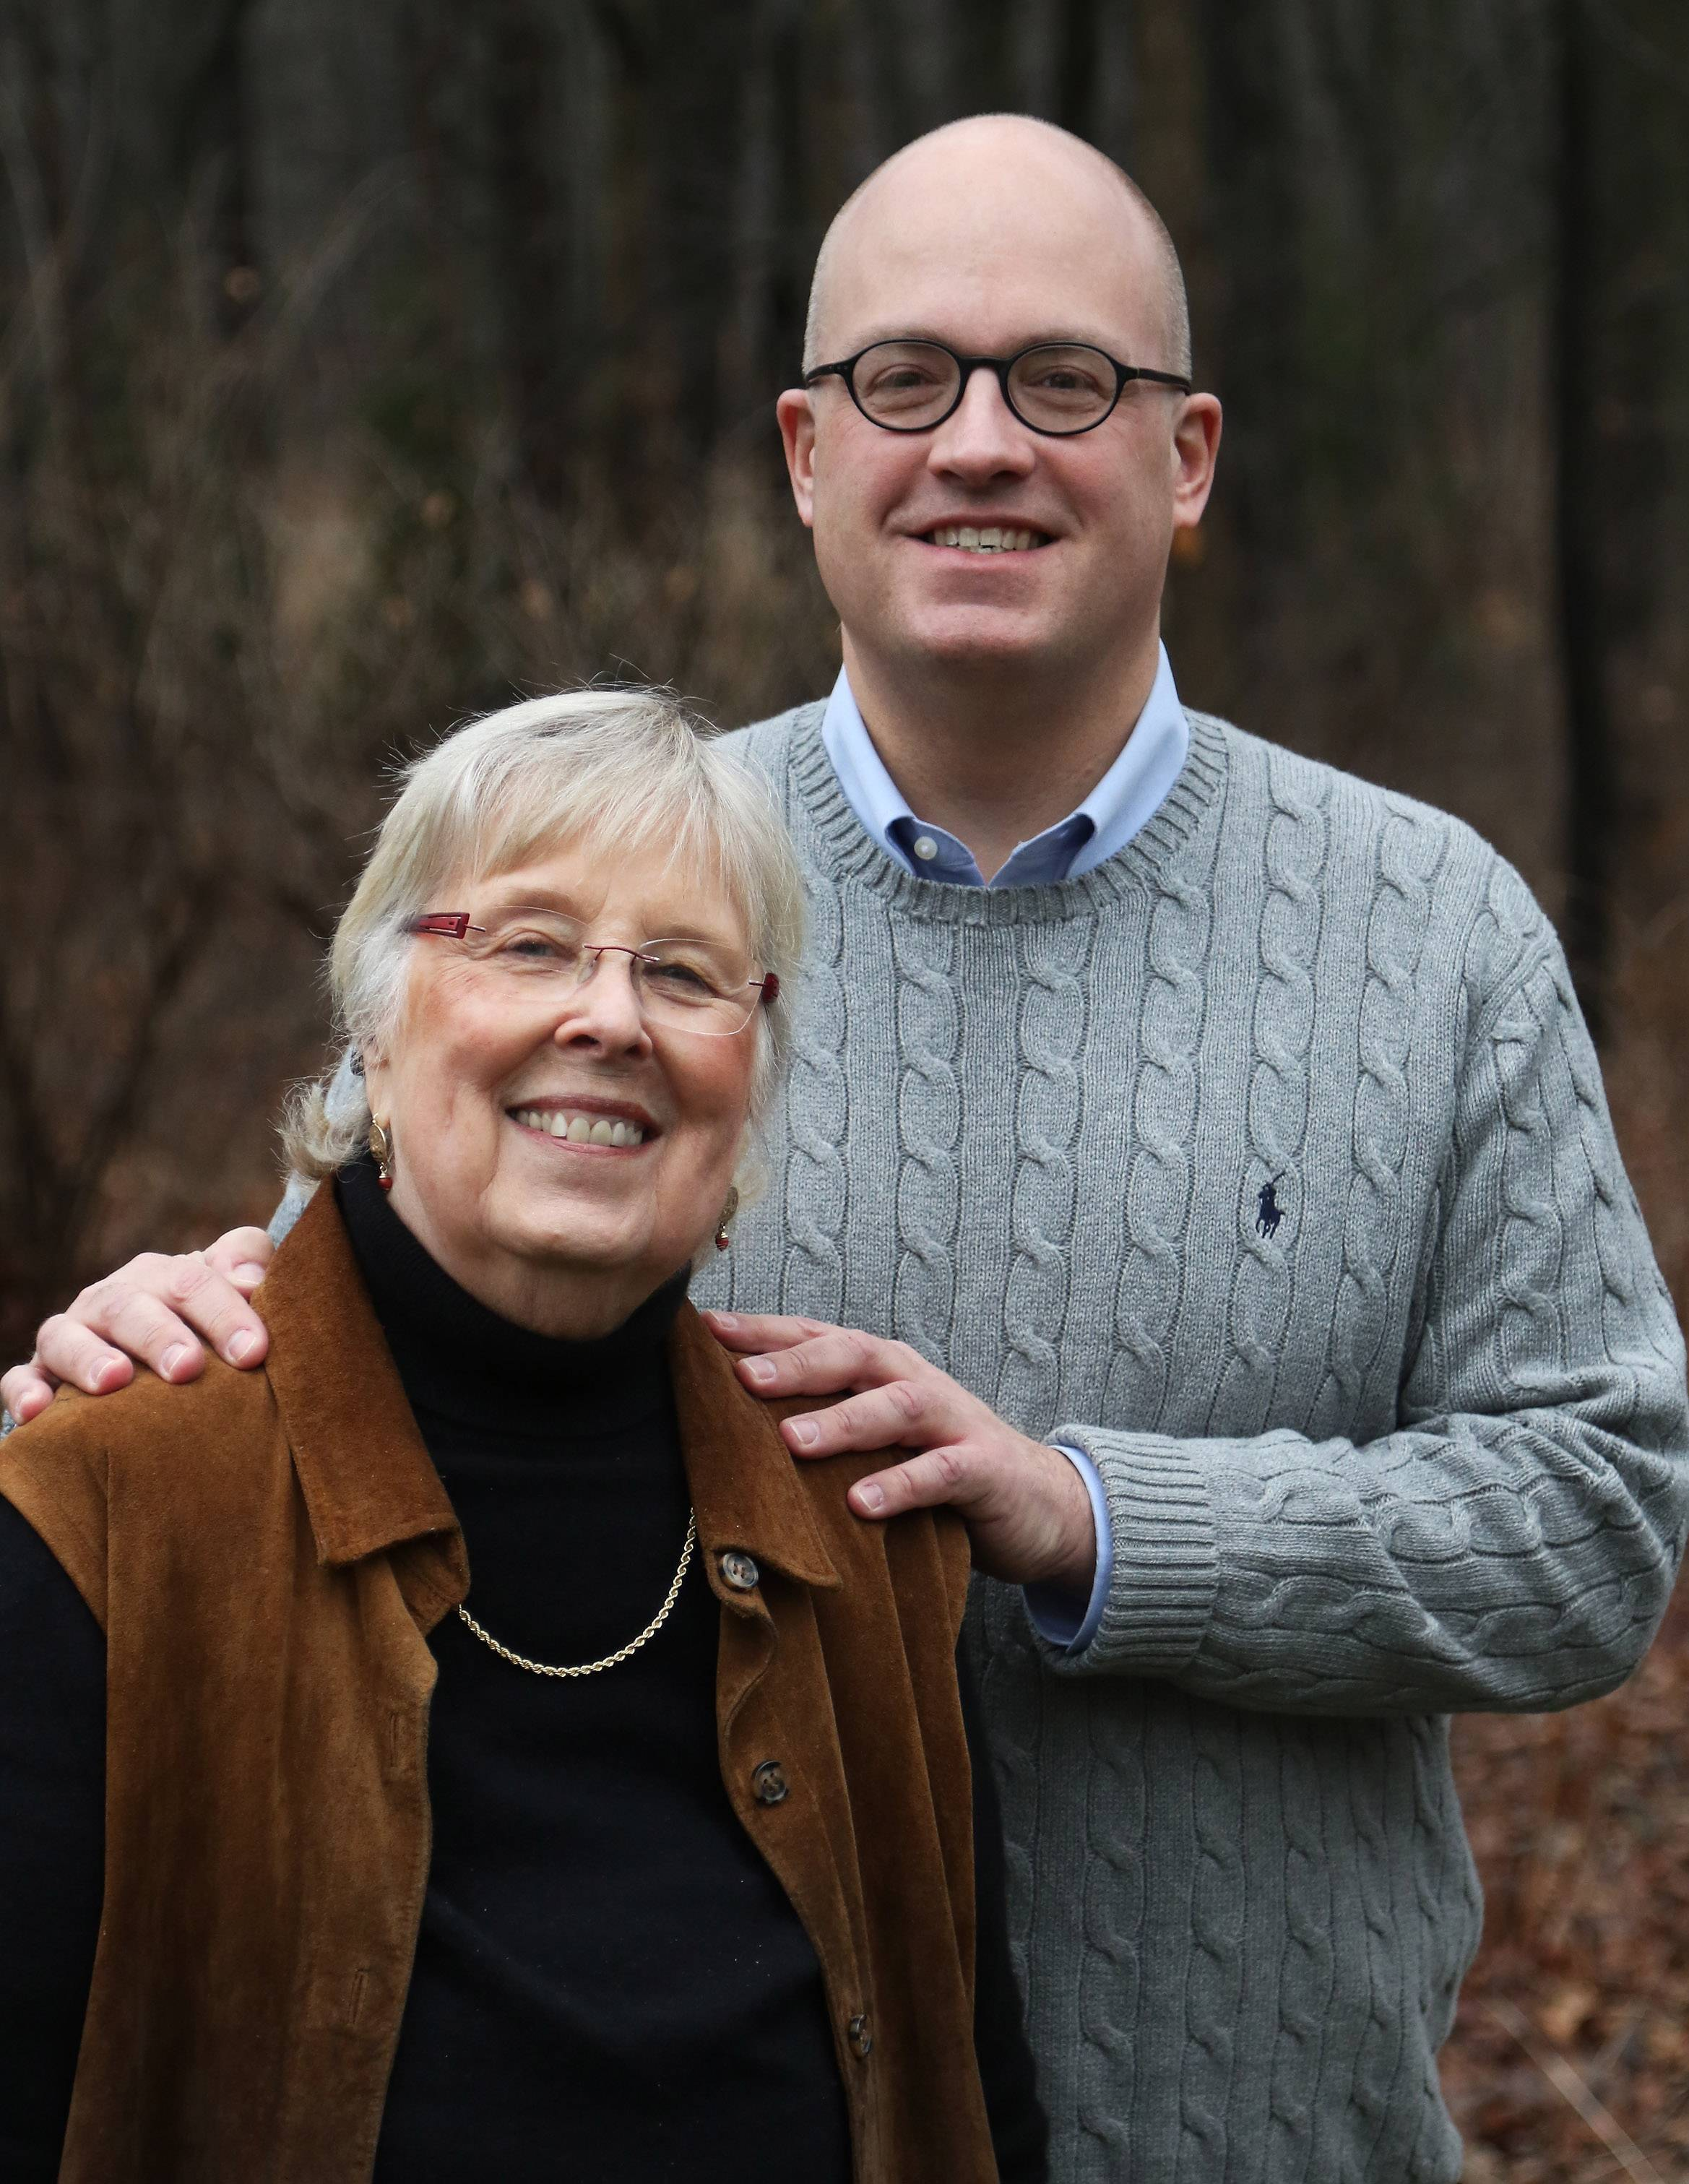 Jonathan Moore visits with his mother, former Lake County Democratic Chairwoman Betty Ann Moore, in her Libertyville home. A 27-year diplomat, Jonathan is stationed in Bosnia and Herzegovina to help oversee the peace process there.